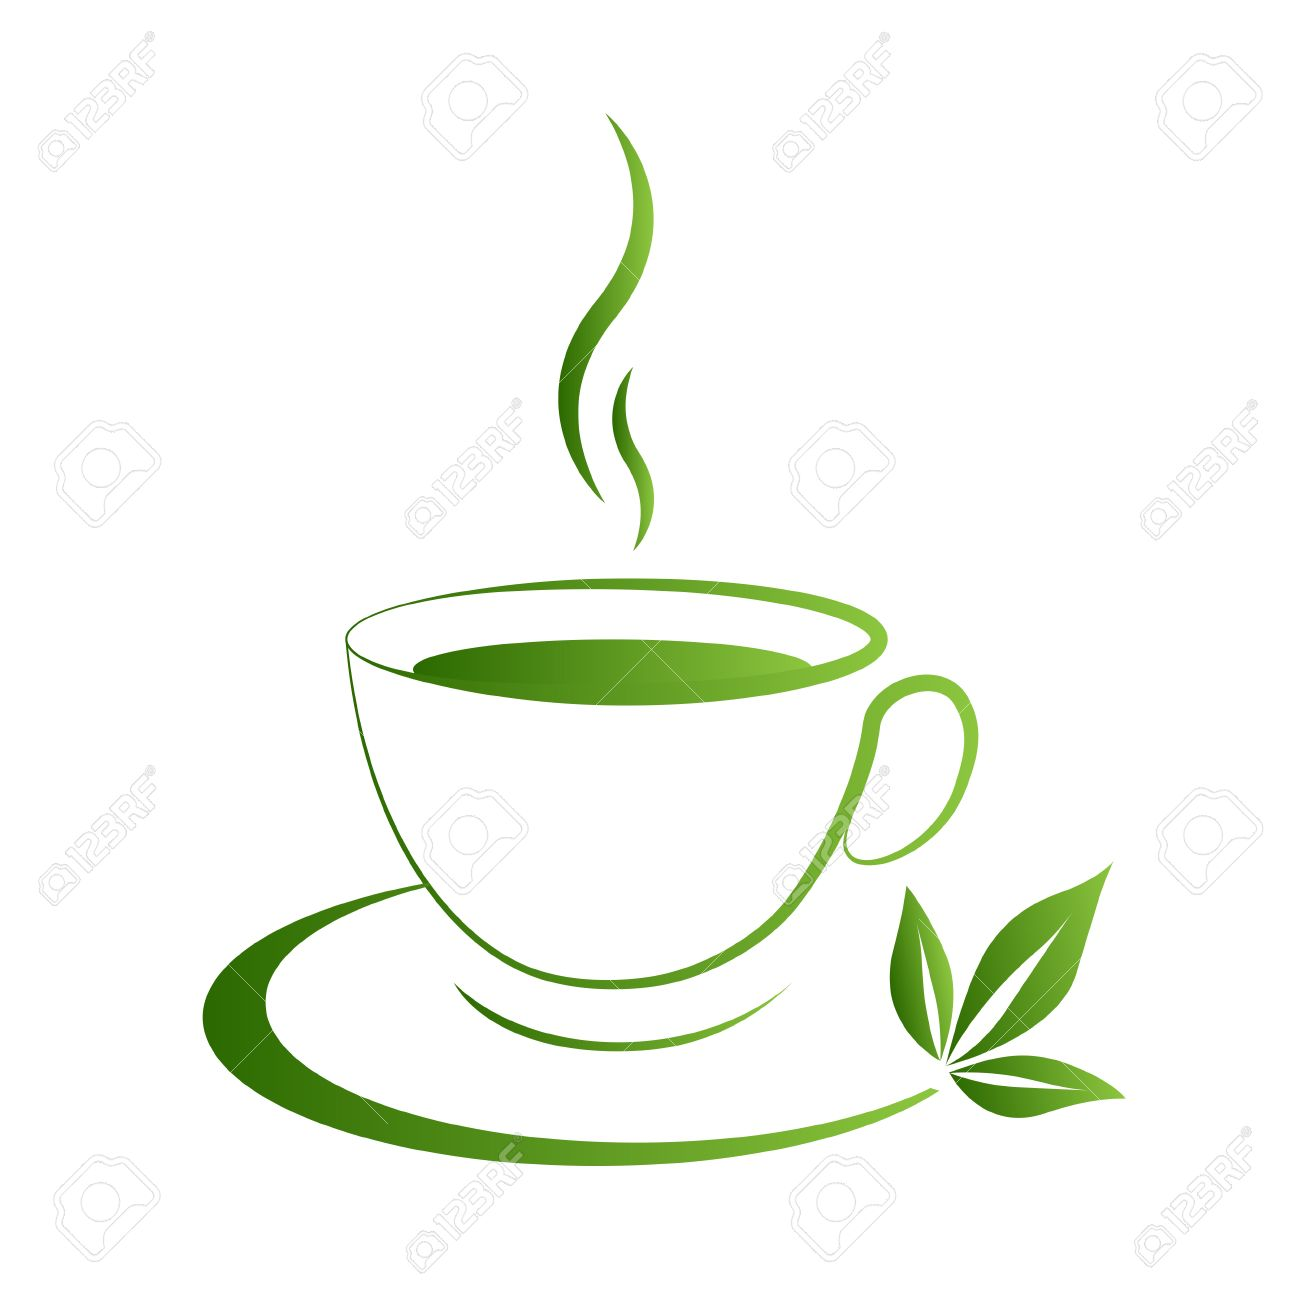 tea cup icon green grad on a white background royalty free cliparts rh 123rf com teacup free vector download tea cup vector image